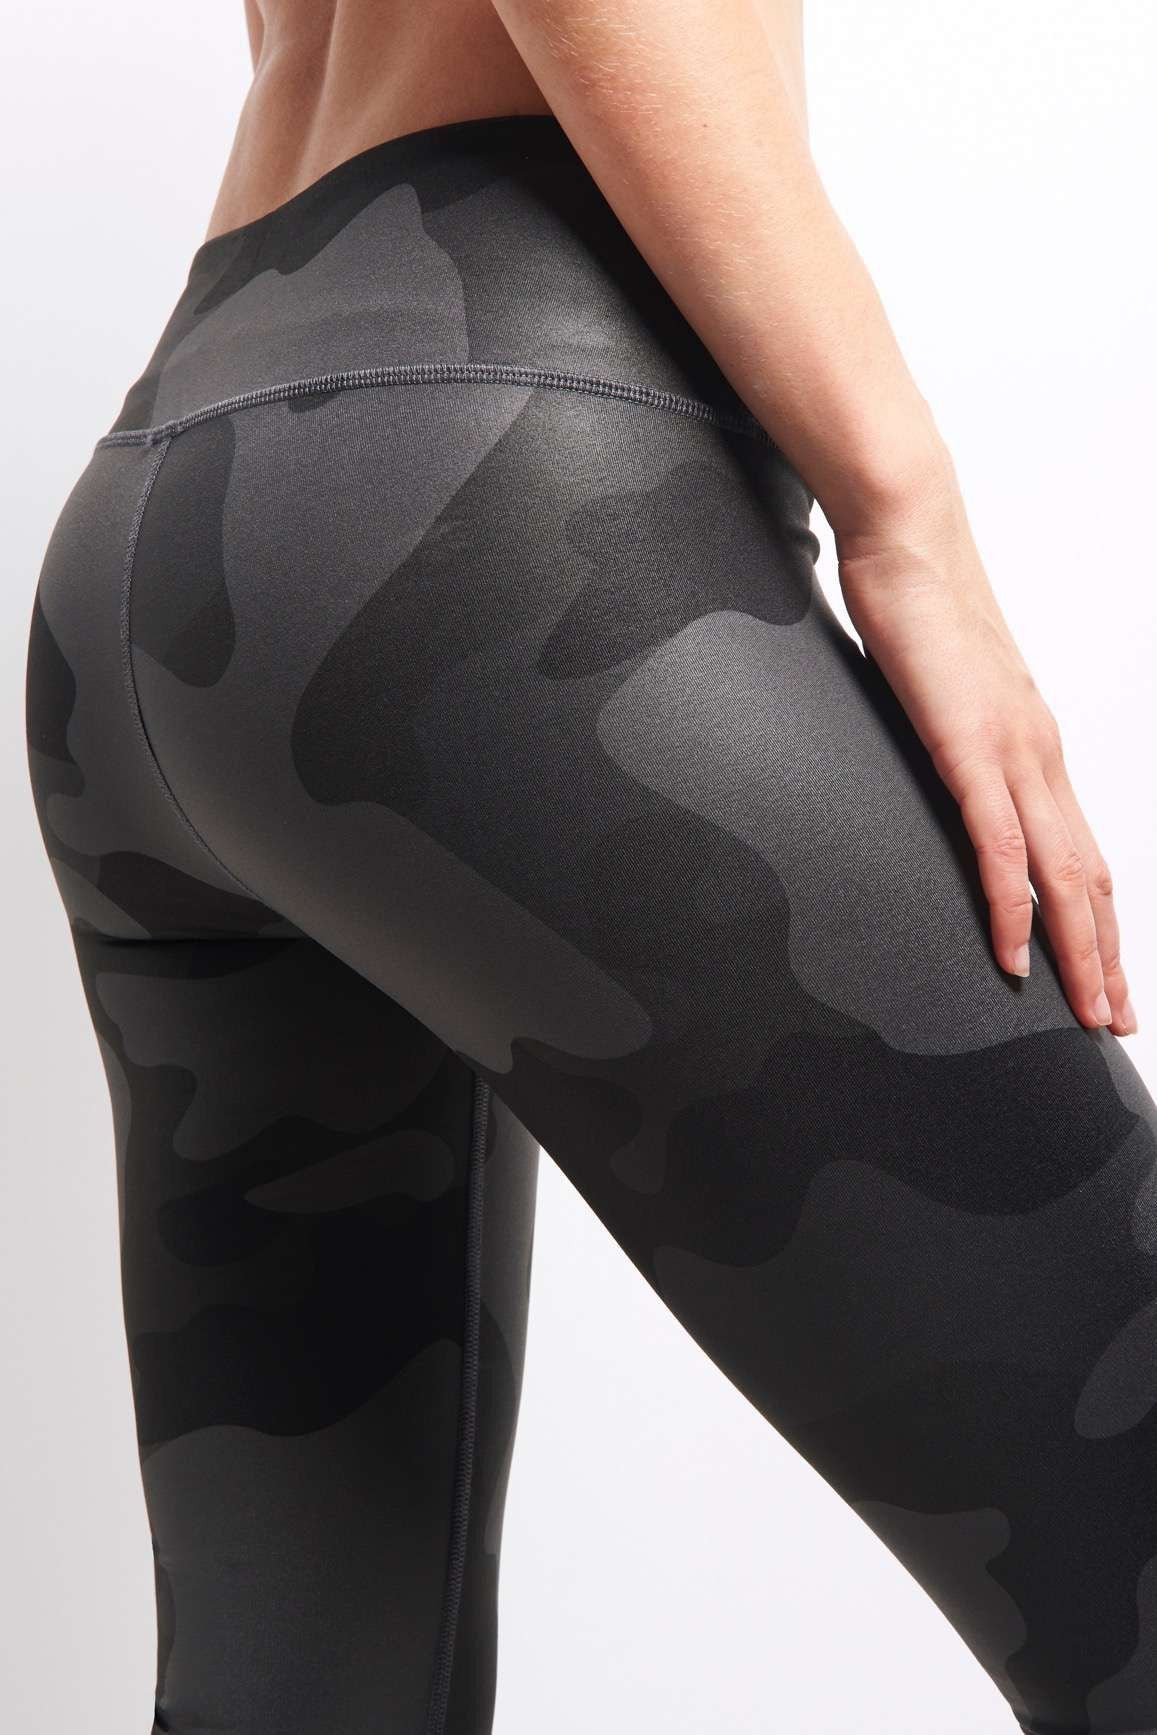 Alo Yoga Airbrush Legging - Black Camo image 4 - The Sports Edit